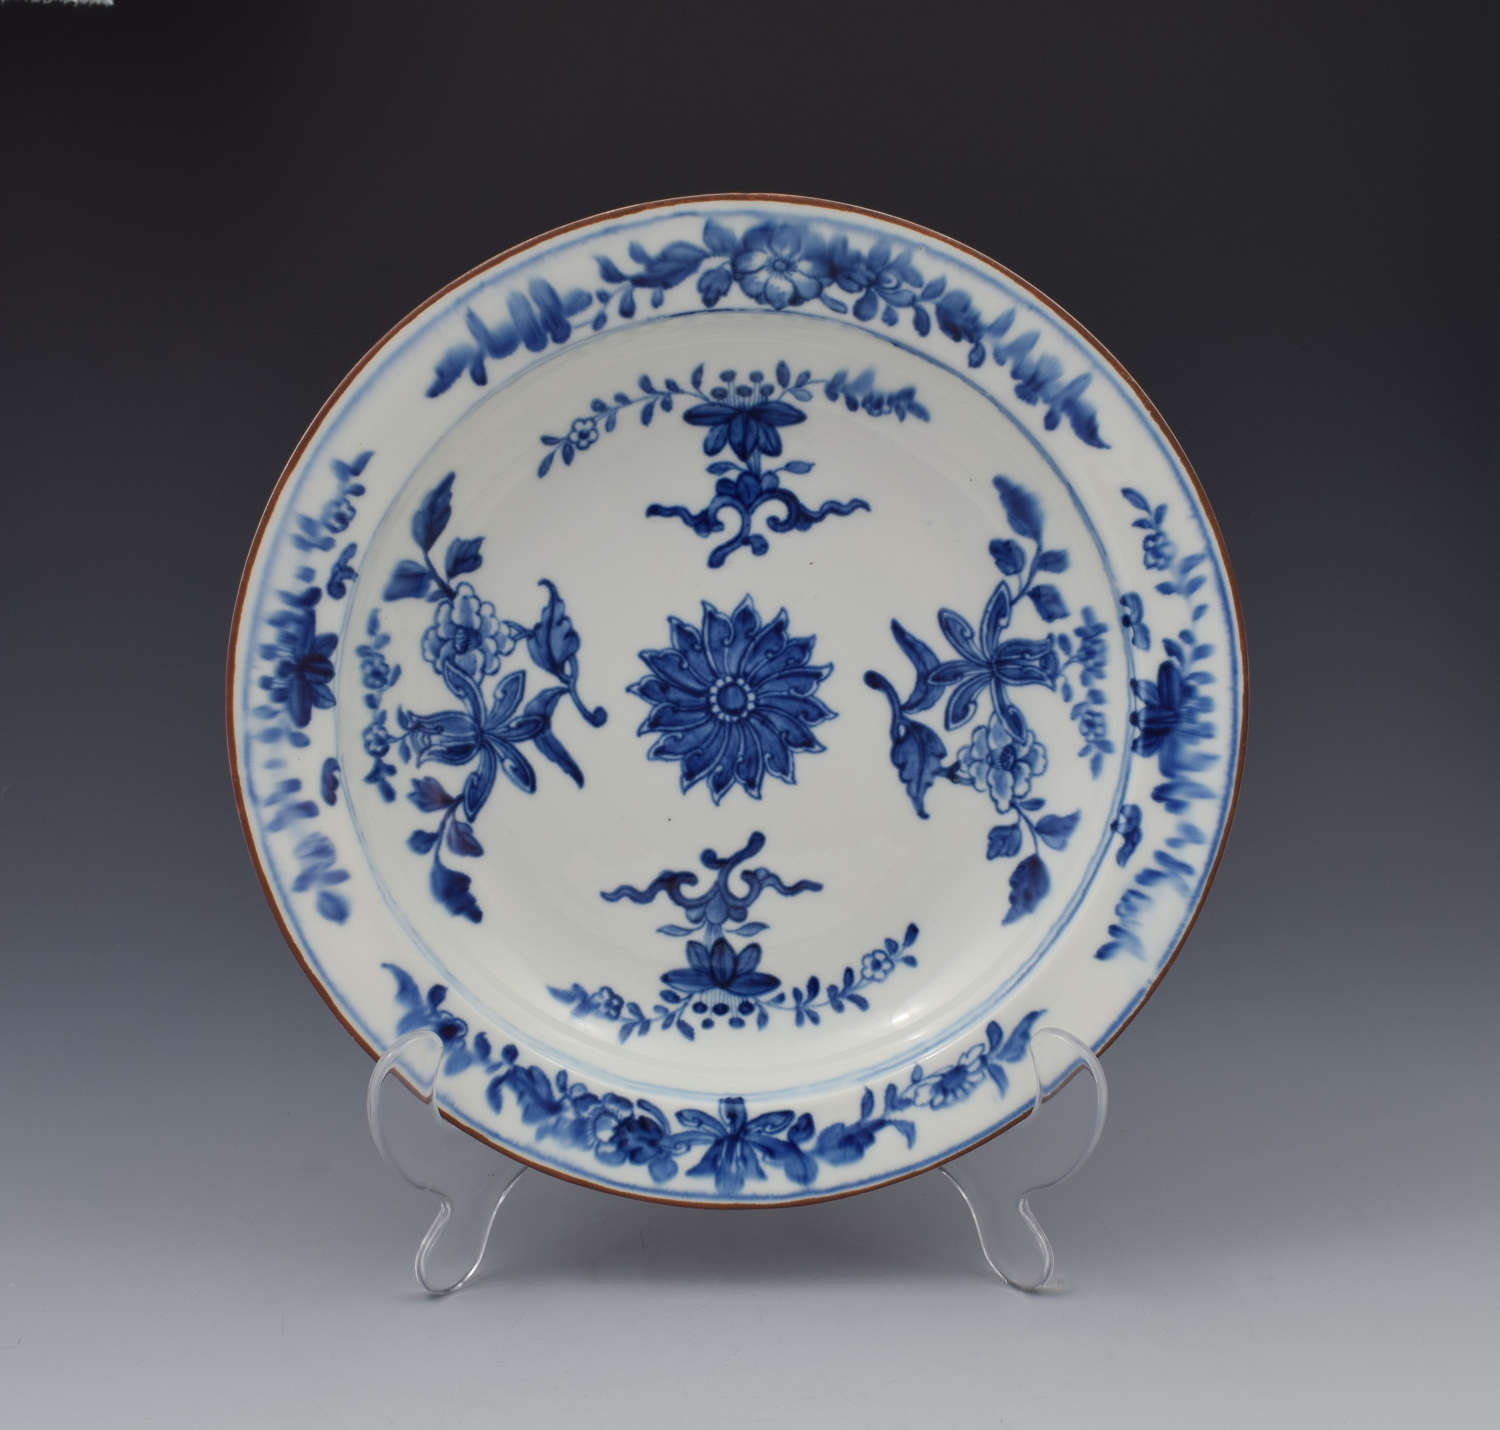 Rare Derby Porcelain Blue & White Chinese Style Soup Bowl / Plate